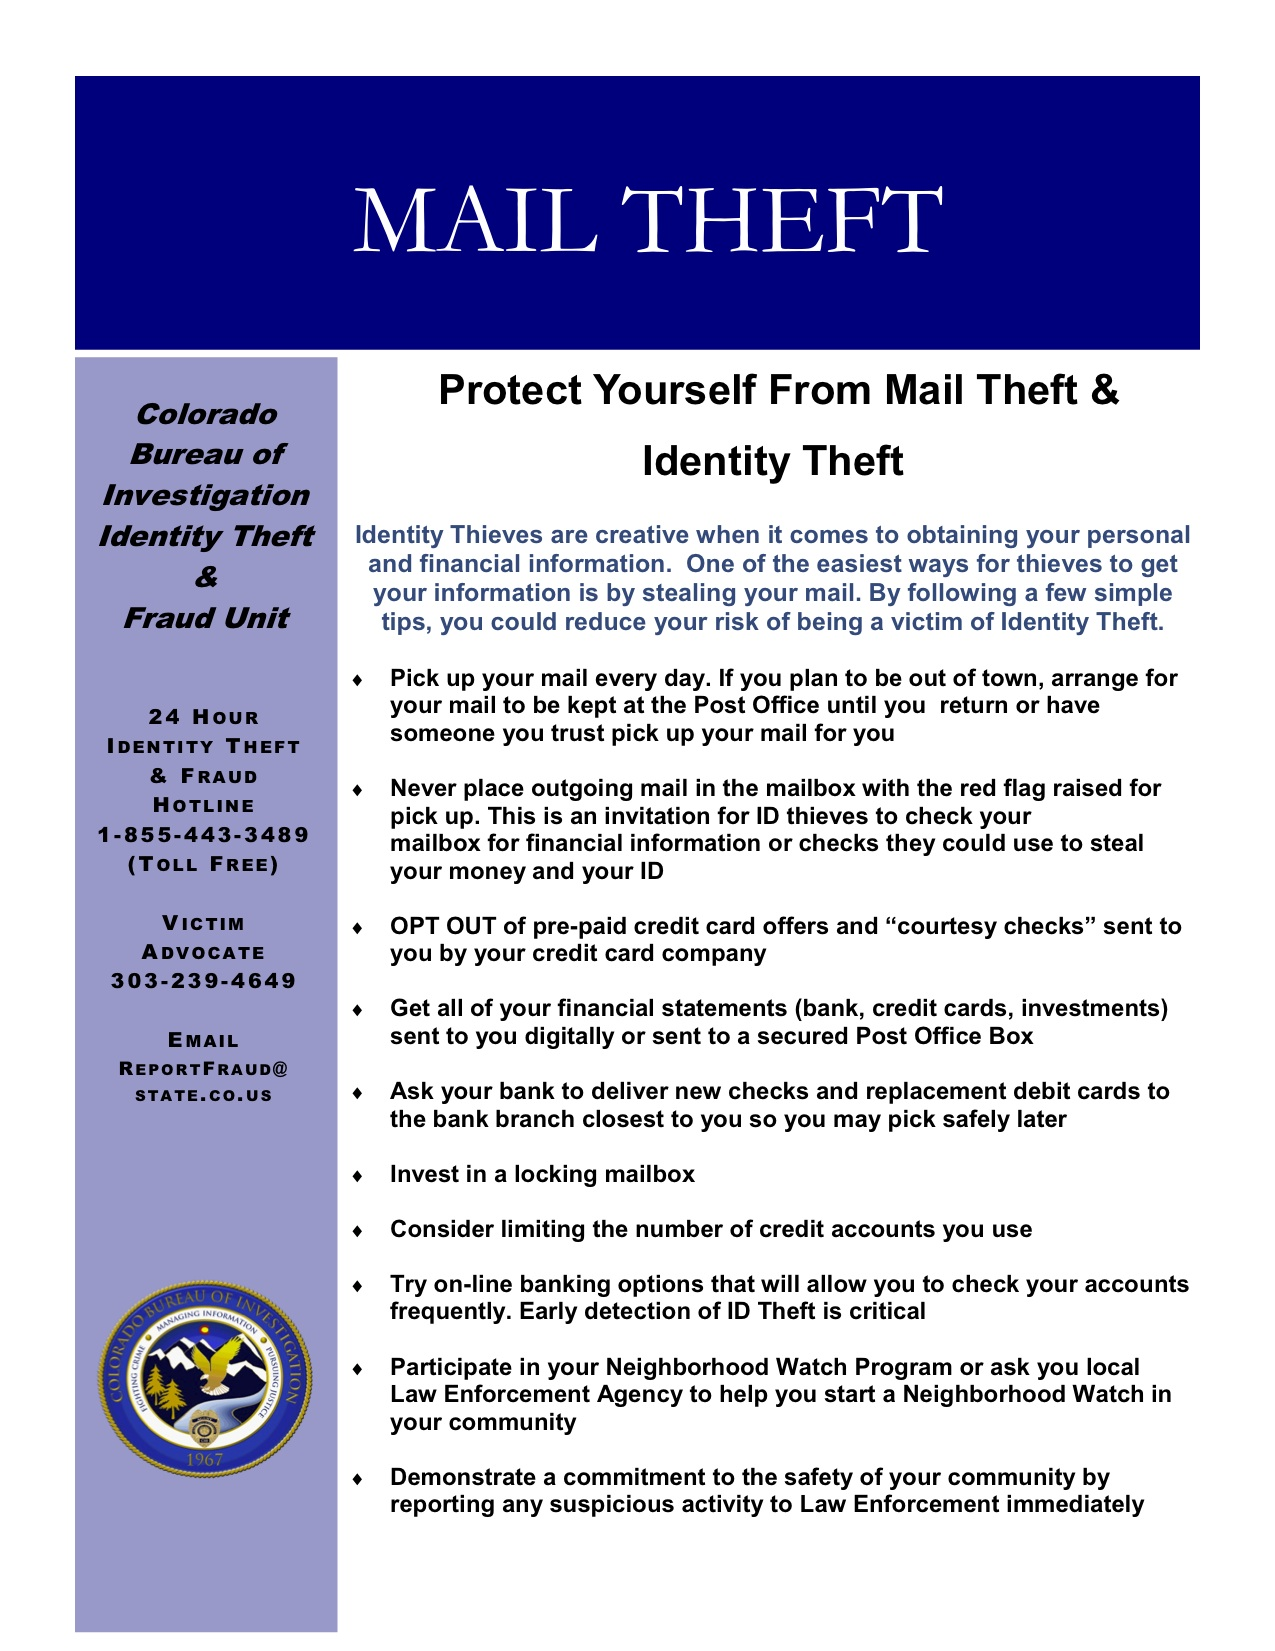 How to Report Mail Theft images